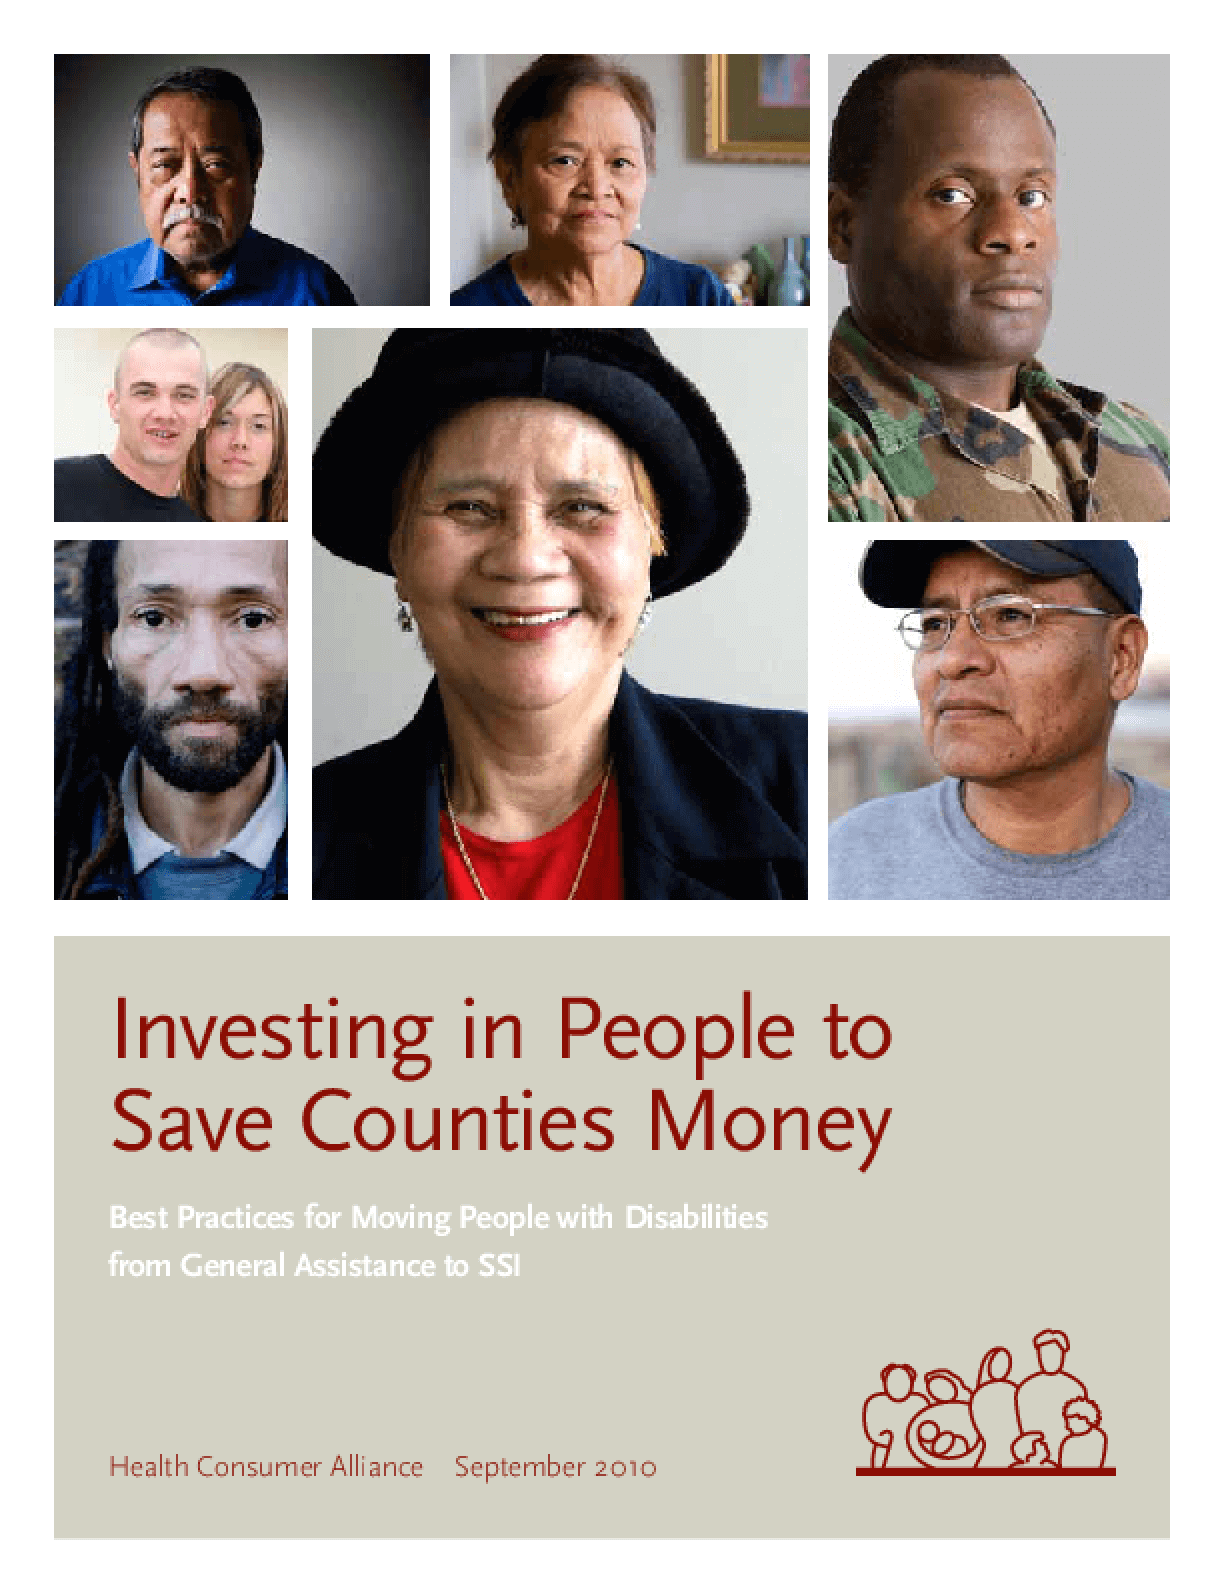 Investing in People to Save Counties Money: Best Practices for Moving People With Disabilities From General Assistance to SSI